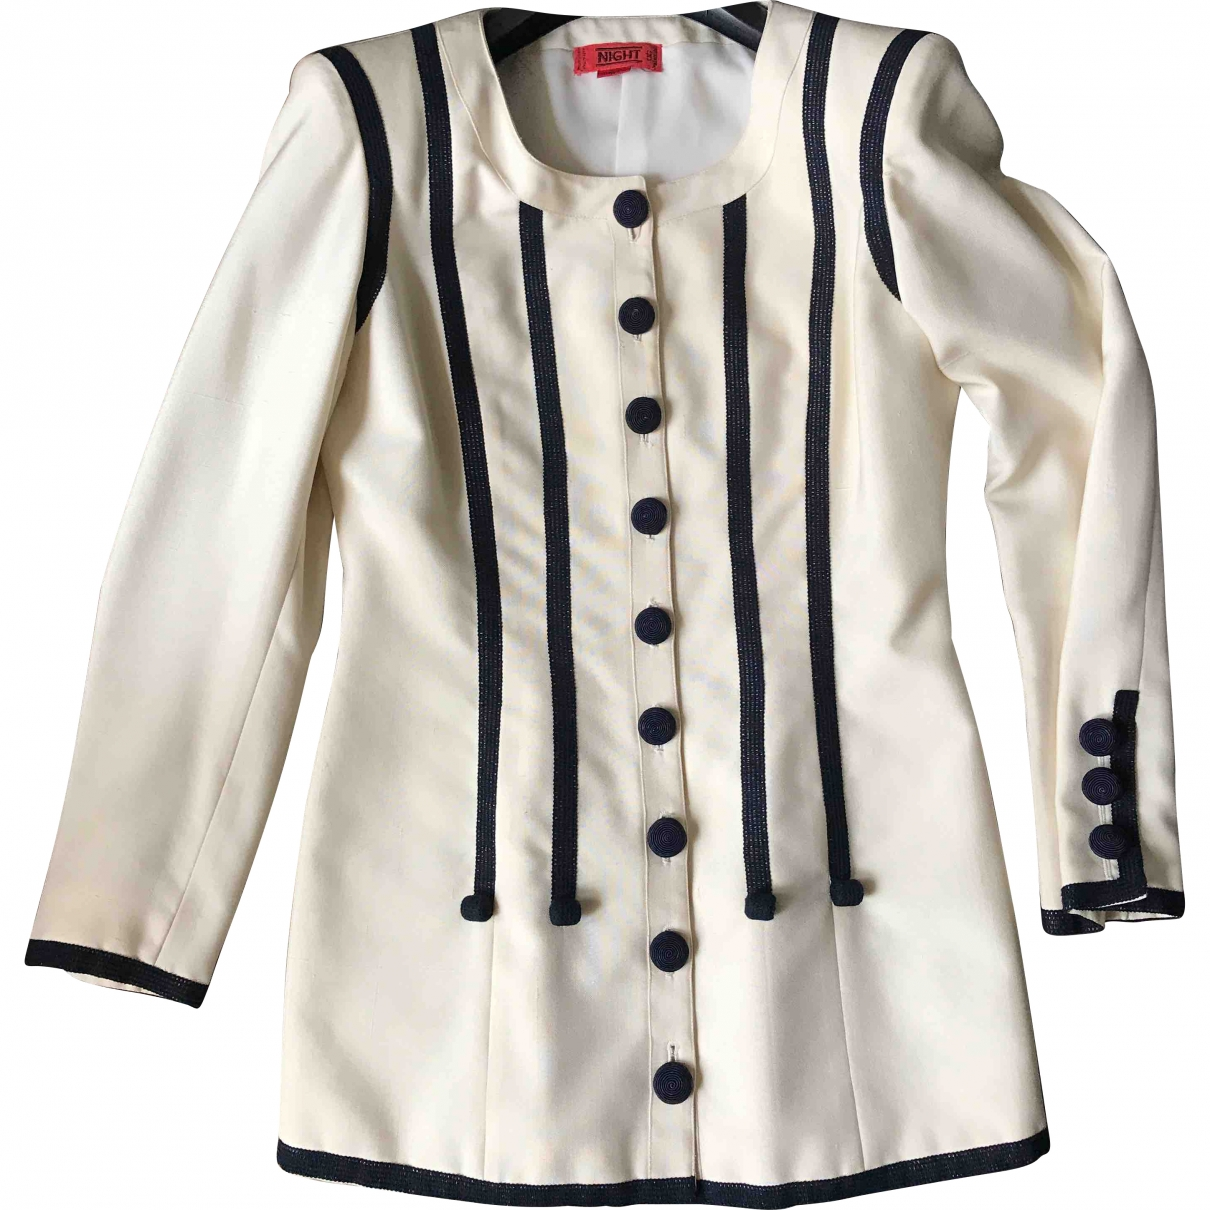 Valentino Garavani \N jacket for Women 42 IT